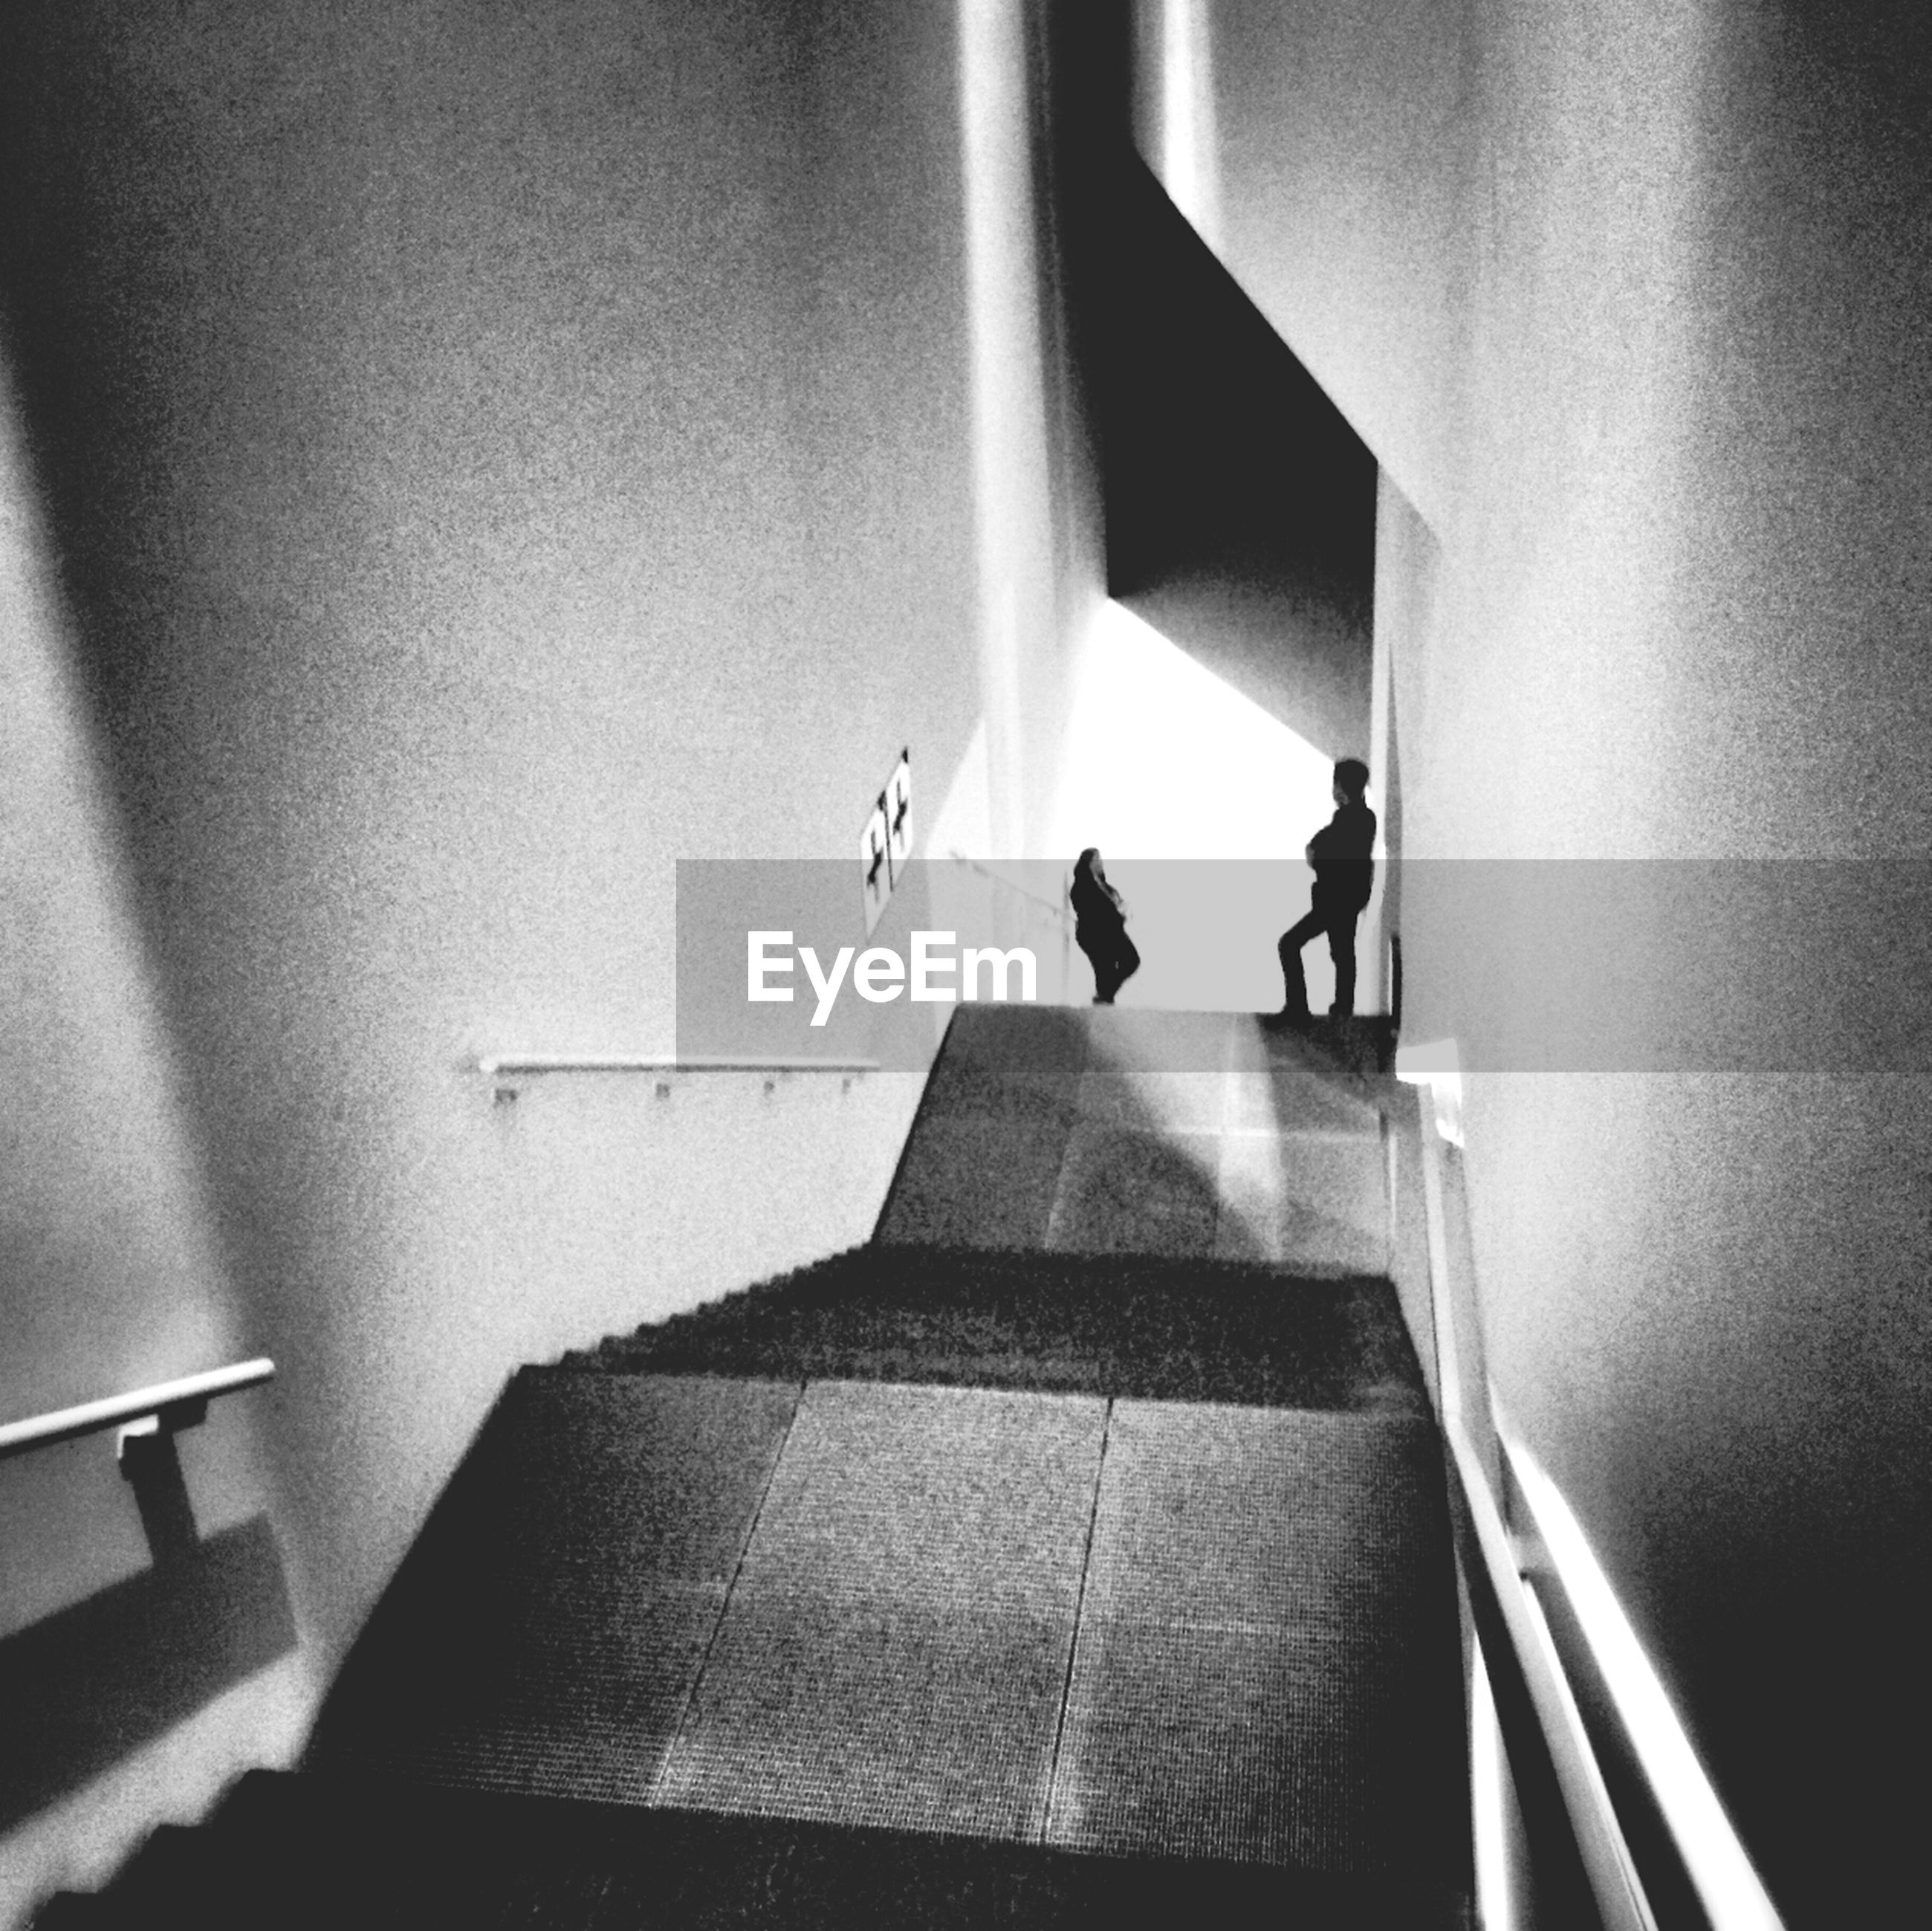 indoors, men, lifestyles, steps, staircase, steps and staircases, person, walking, full length, illuminated, wall - building feature, built structure, leisure activity, architecture, railing, corridor, rear view, flooring